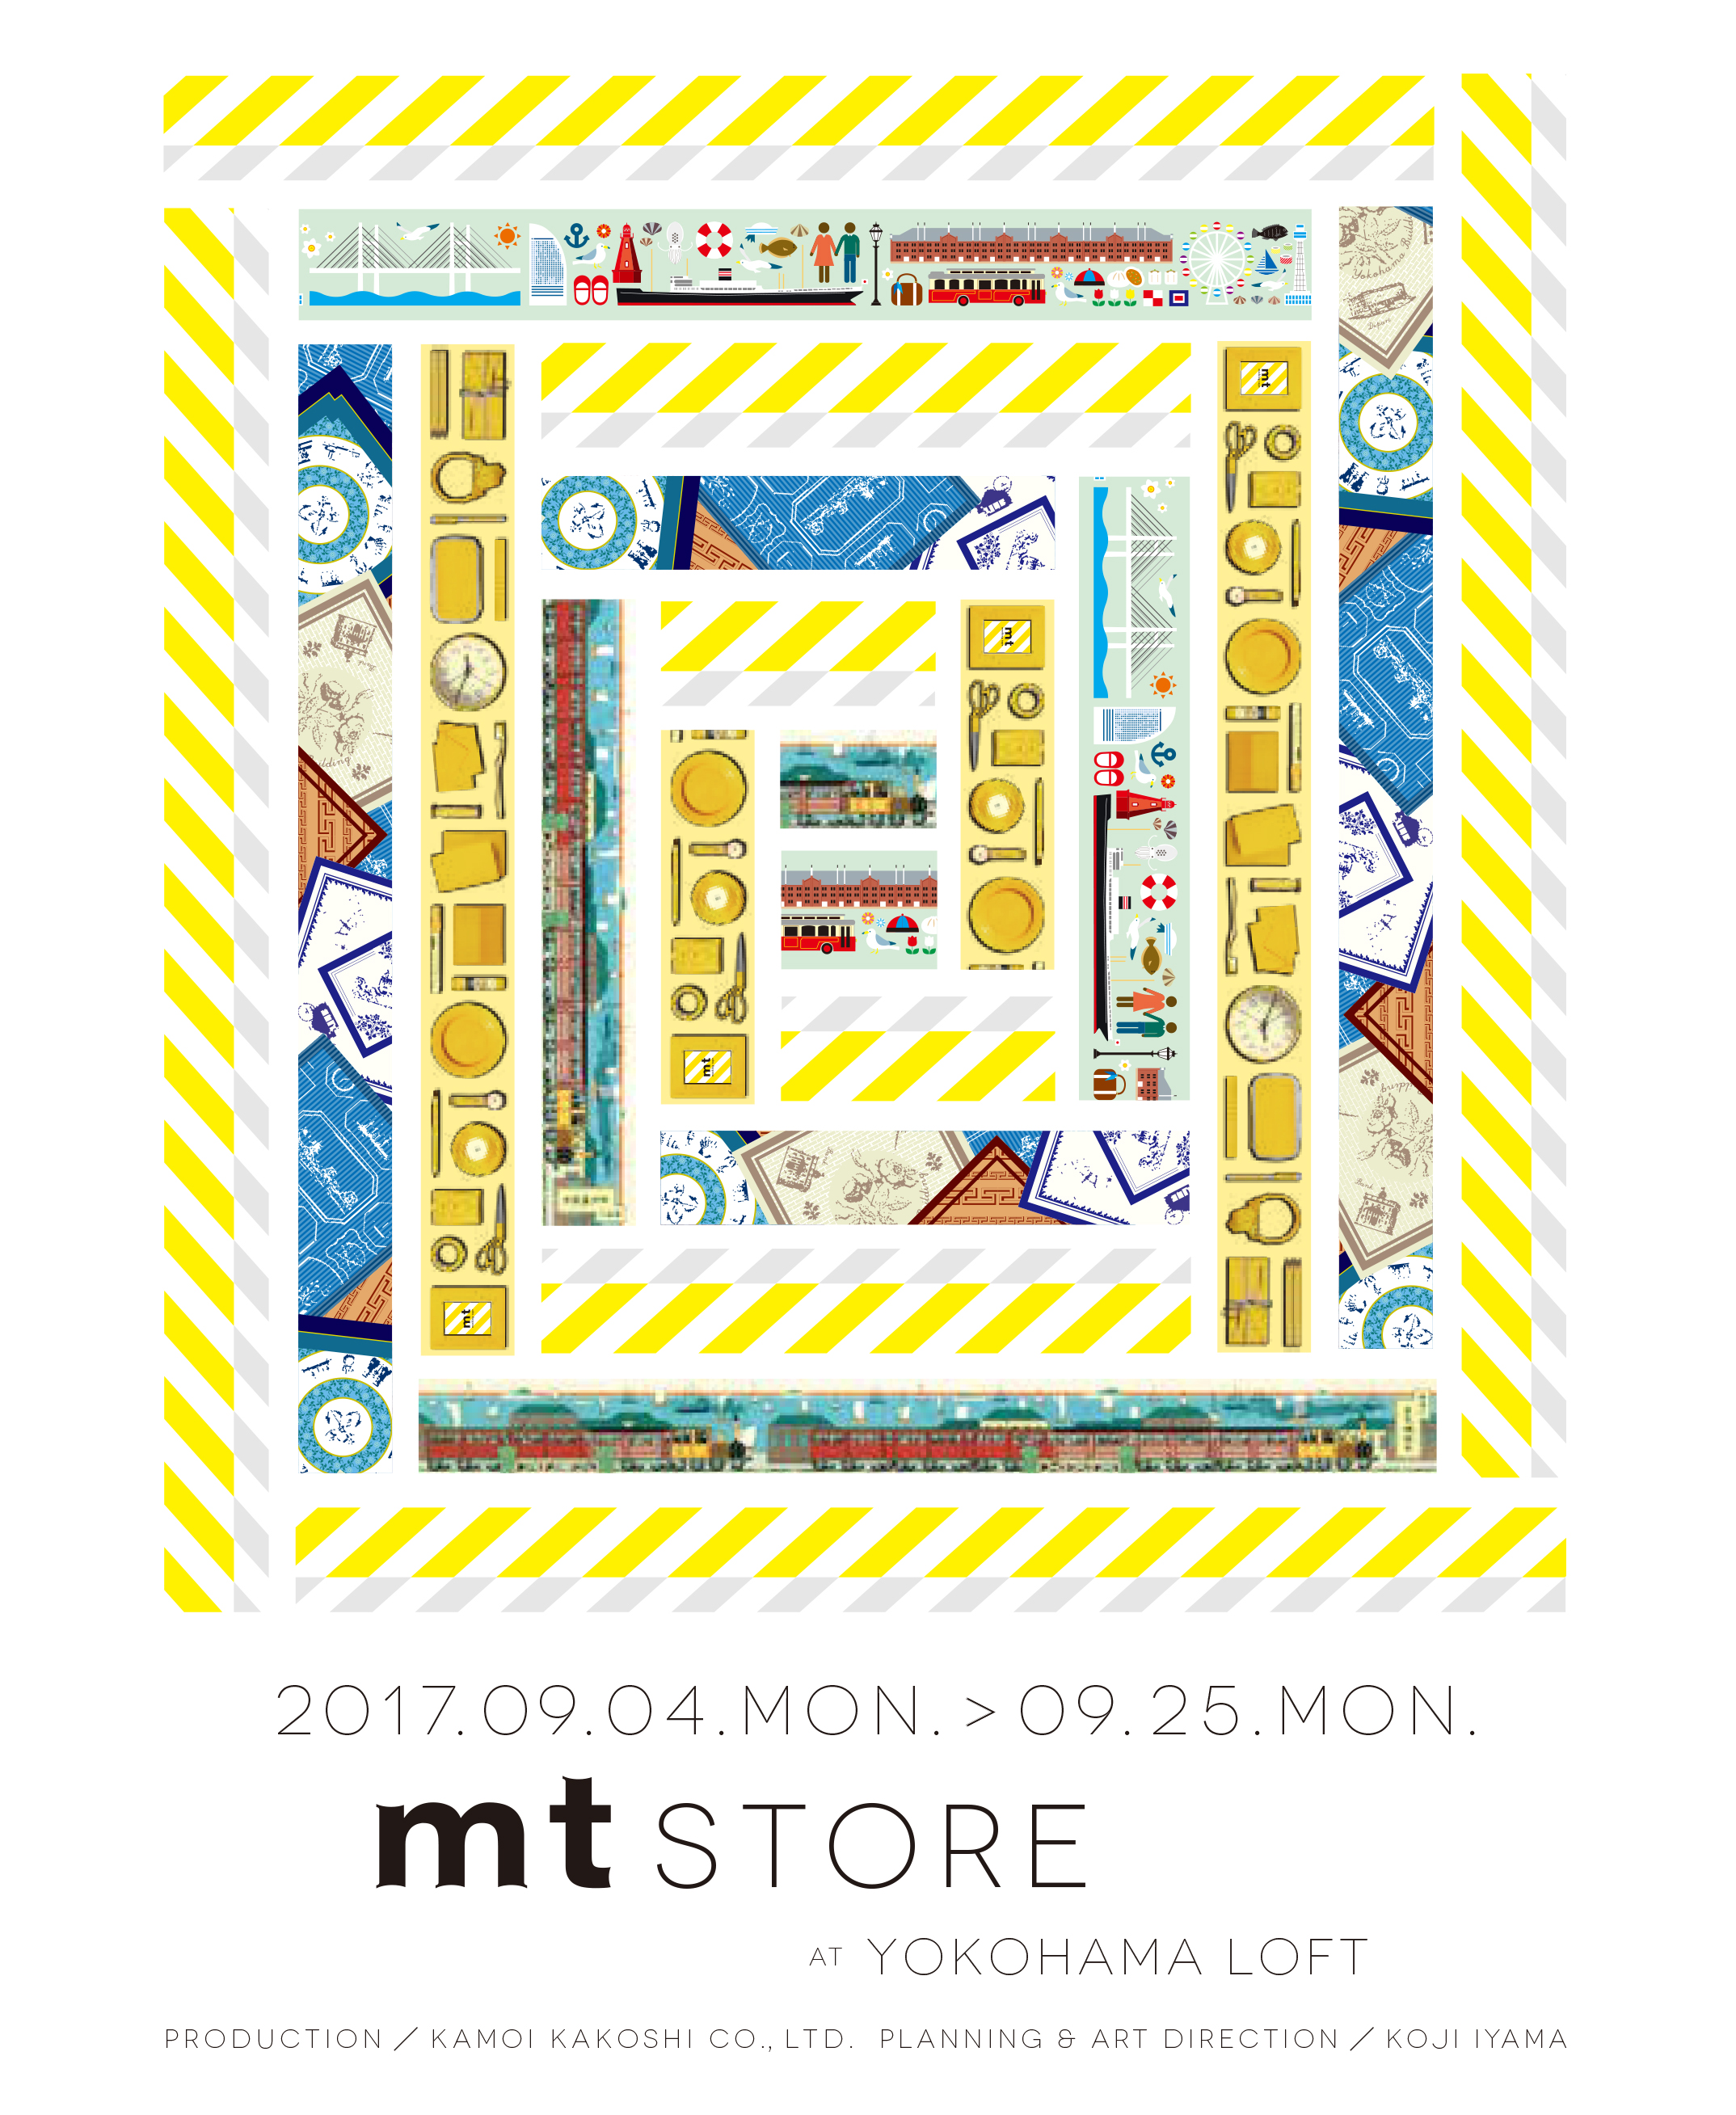 mt STORE at YOKOHAMA LOFT